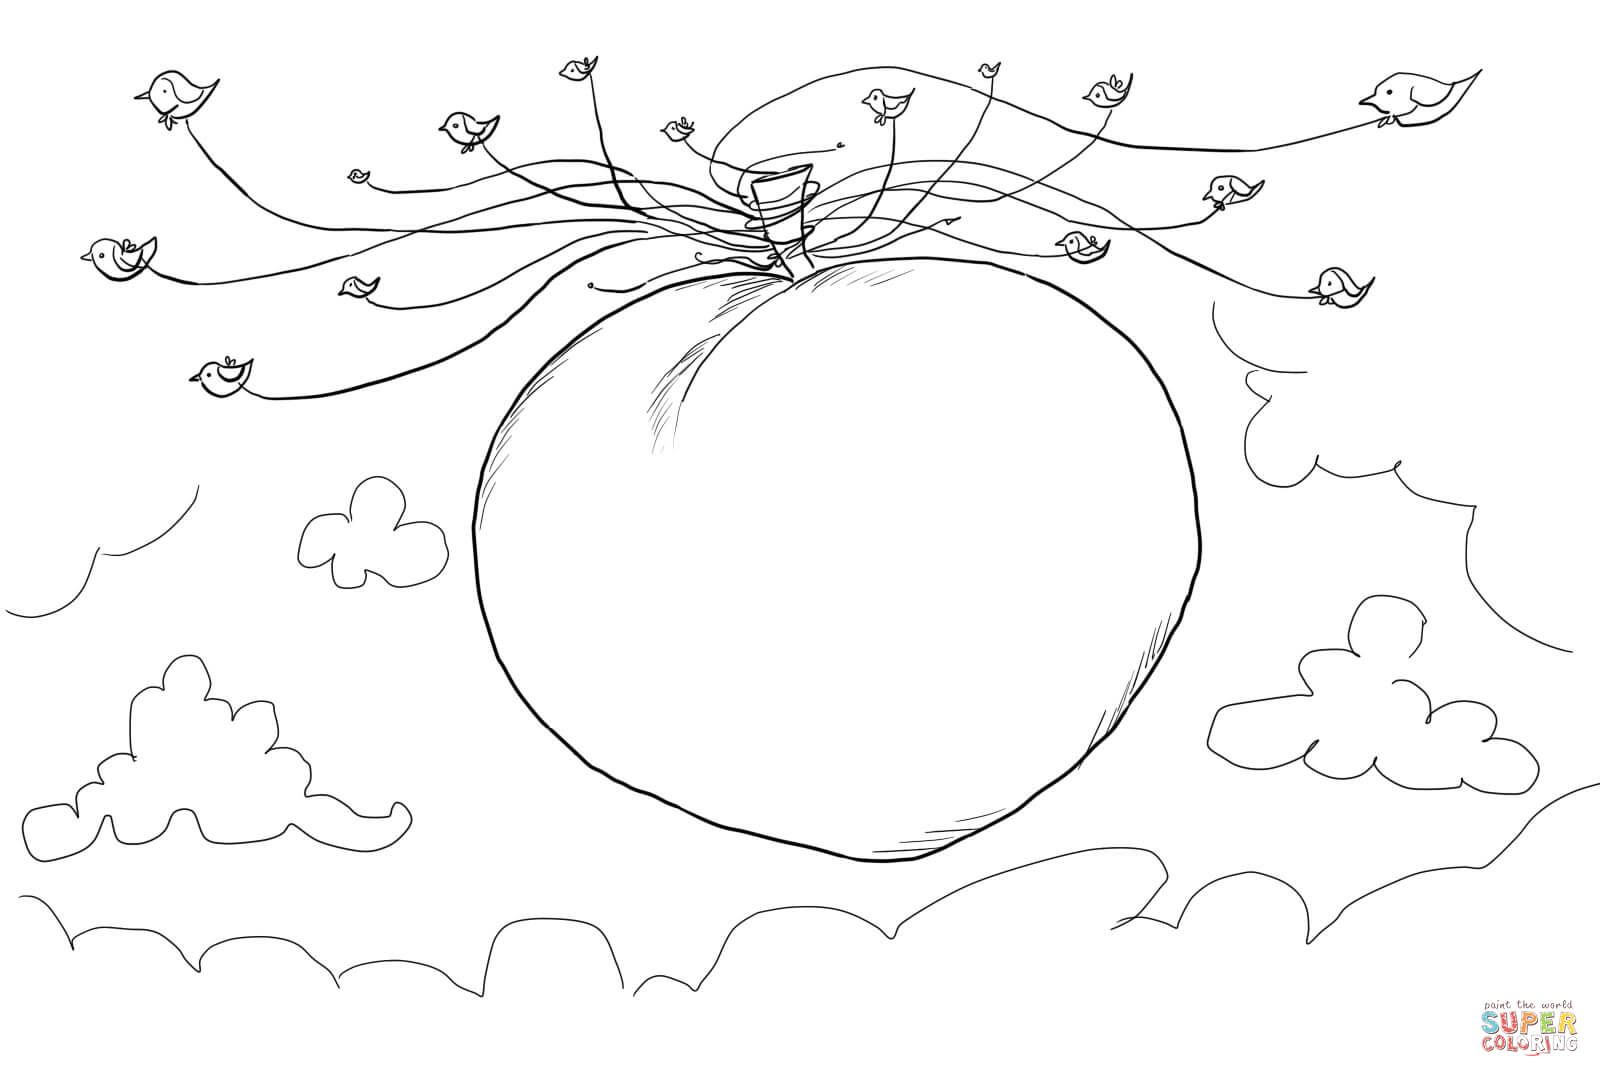 Seagulls Carrying James And The Giant Peach Coloring Page